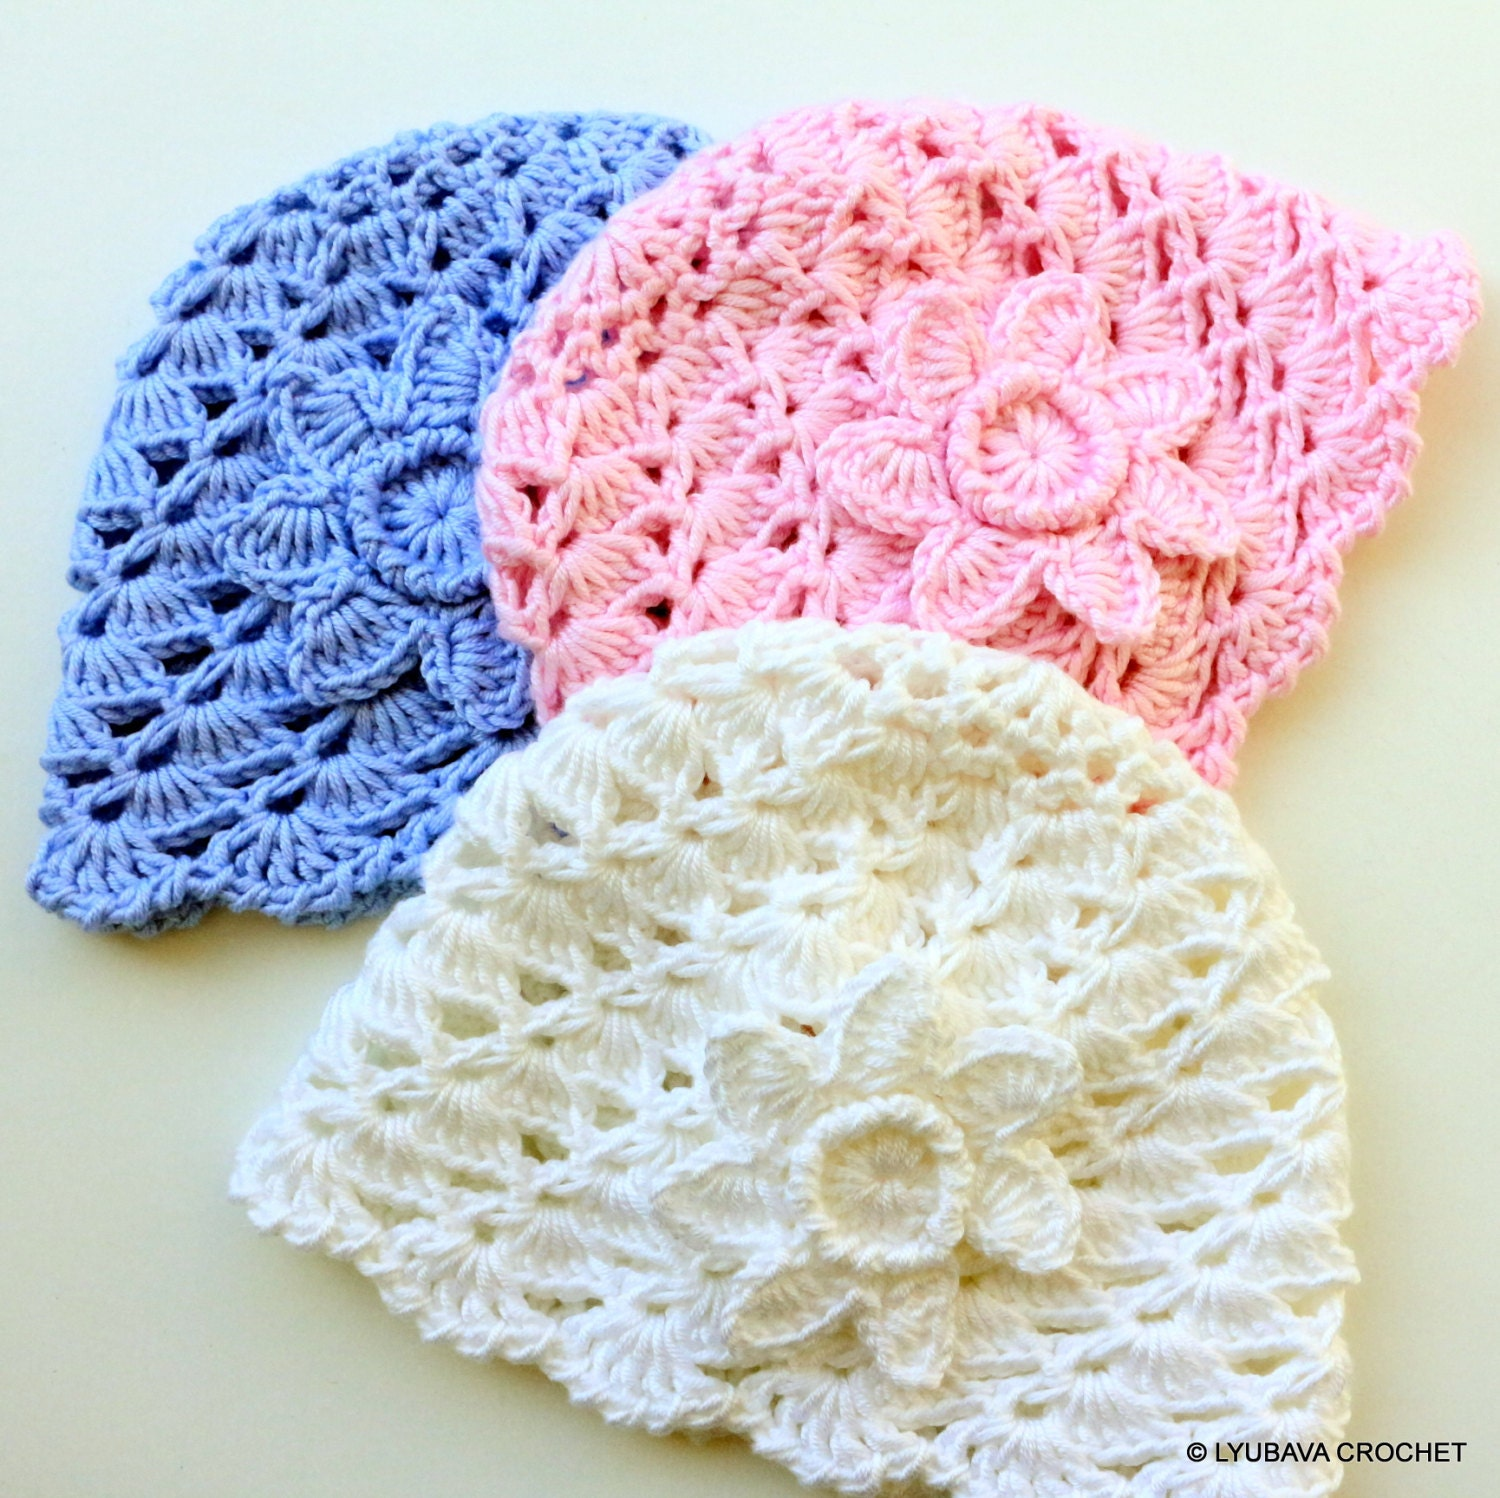 Crochet Flower For Hat : CROCHET PATTERN Baby Hat Crochet Flower Hat Diy by LyubavaCrochet